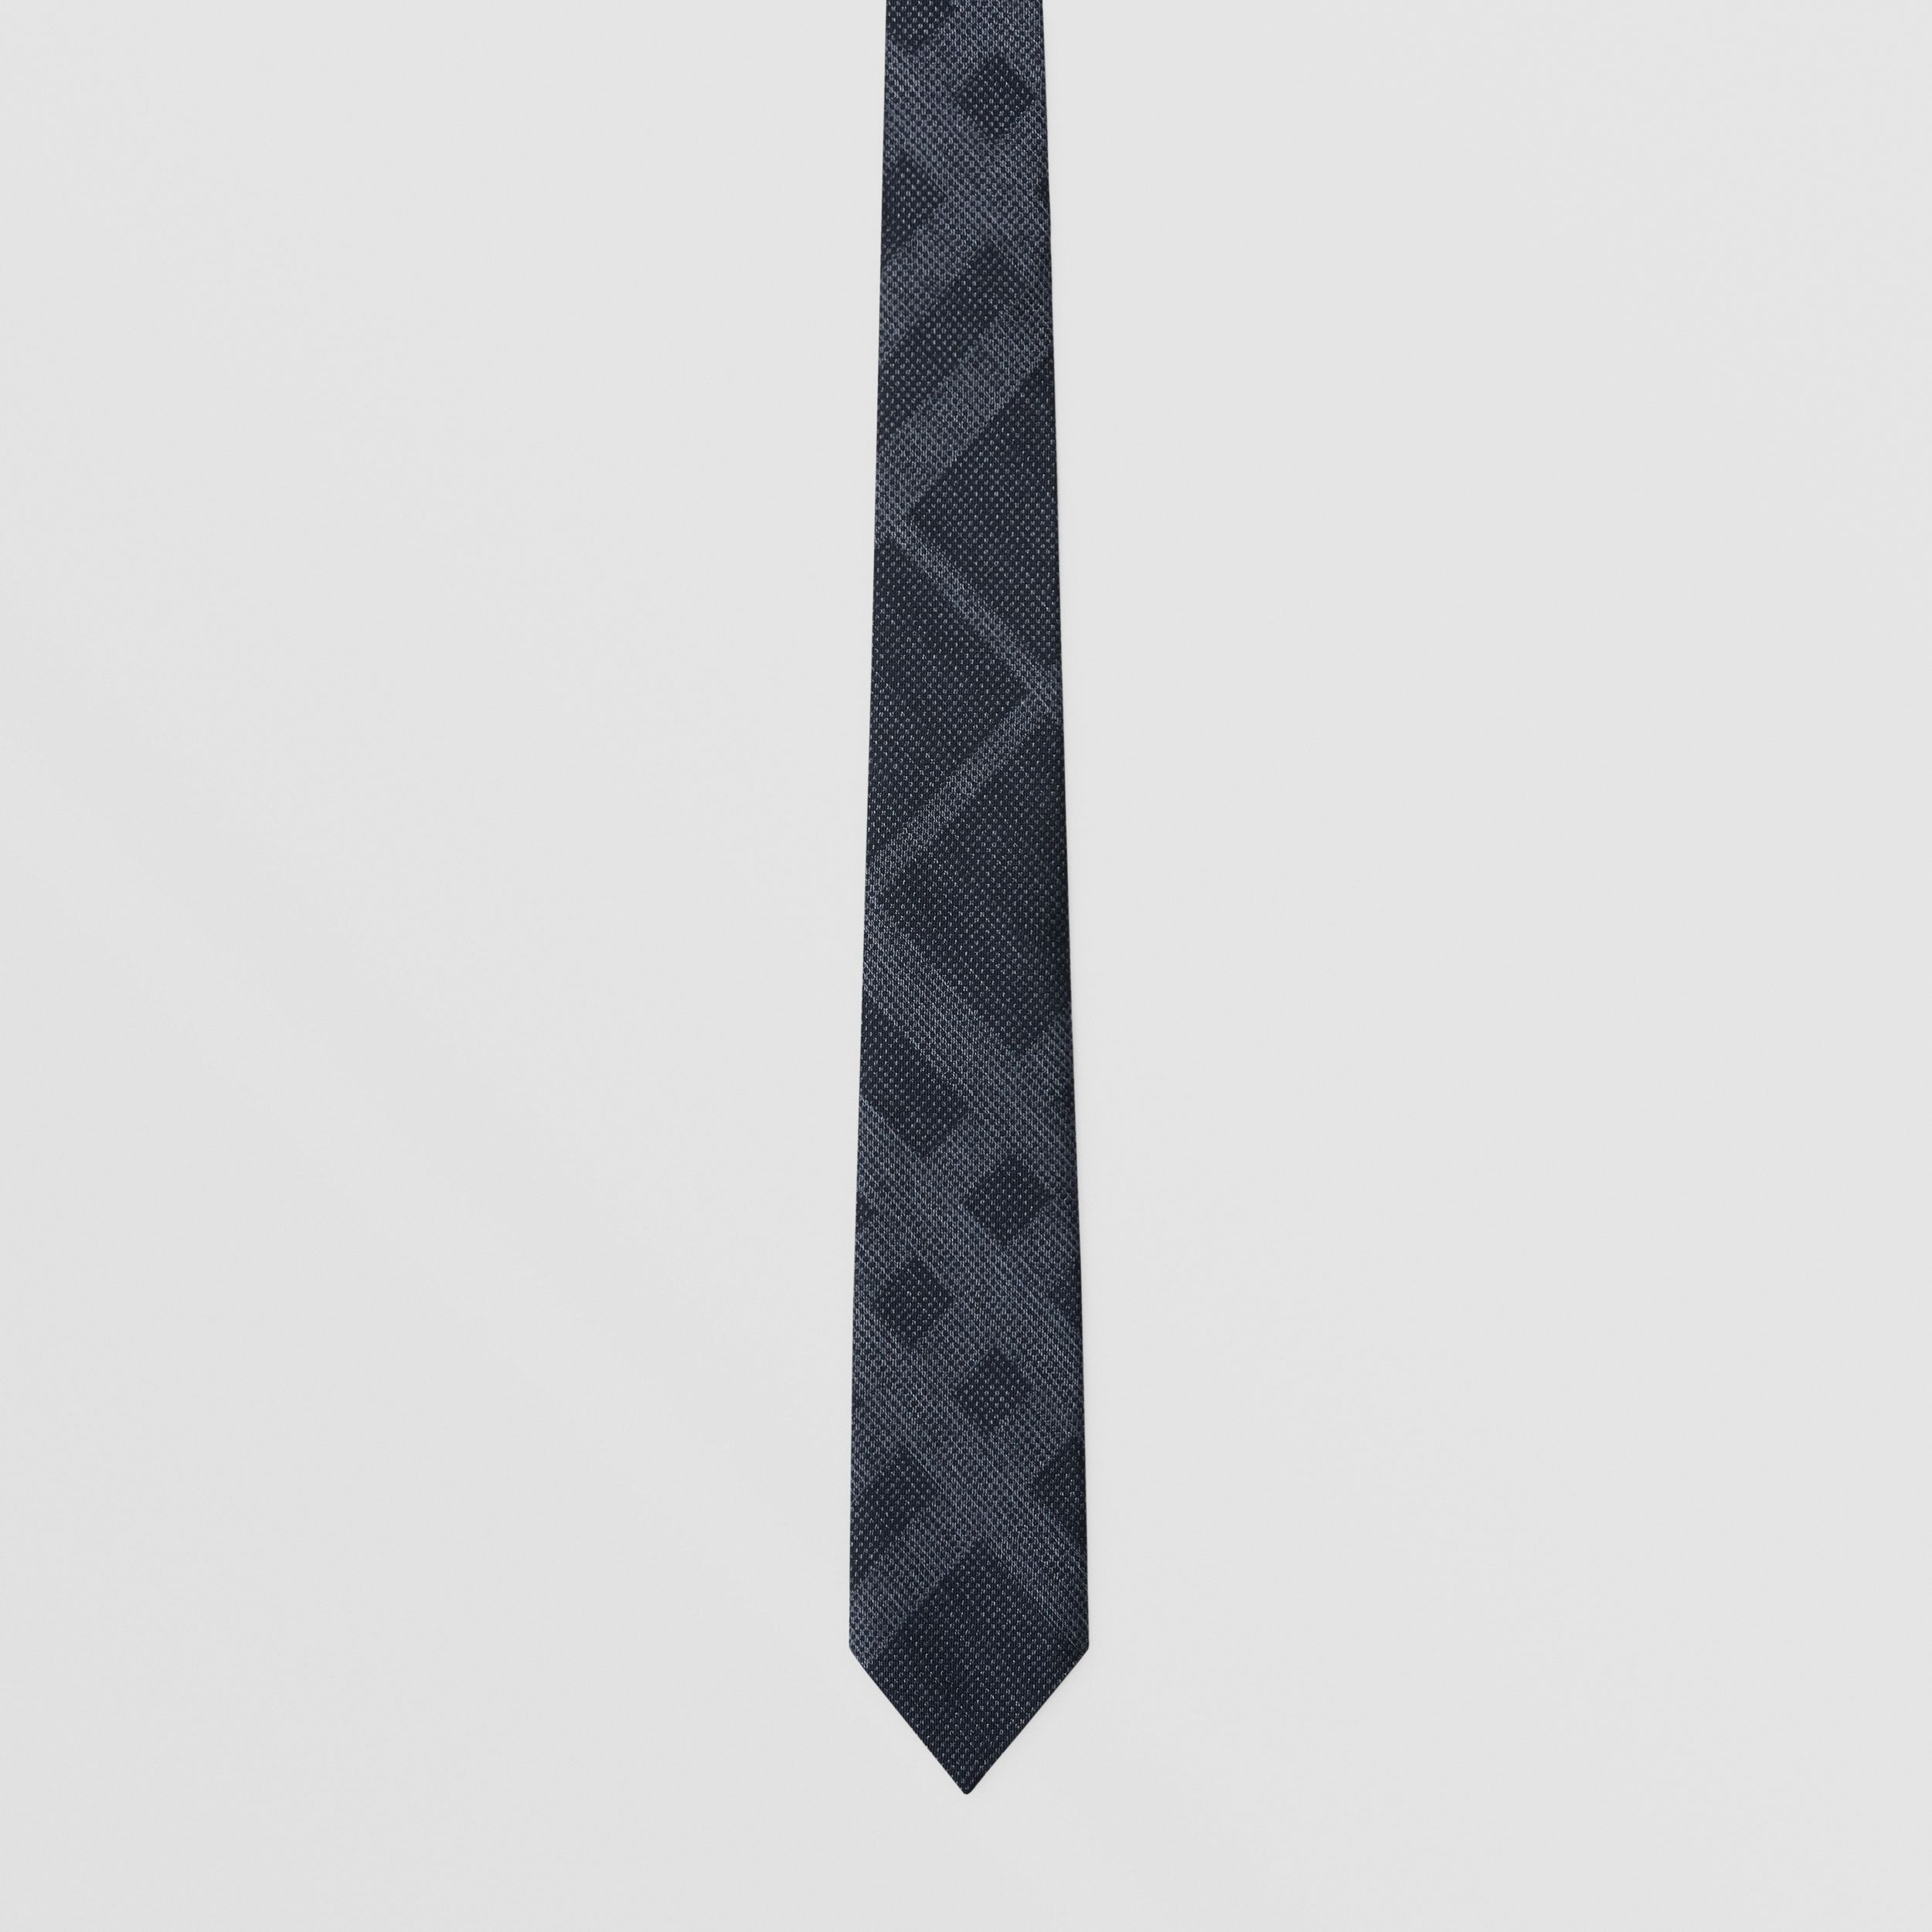 Classic Cut Check Silk Tie in Navy Melange - Men | Burberry - 4